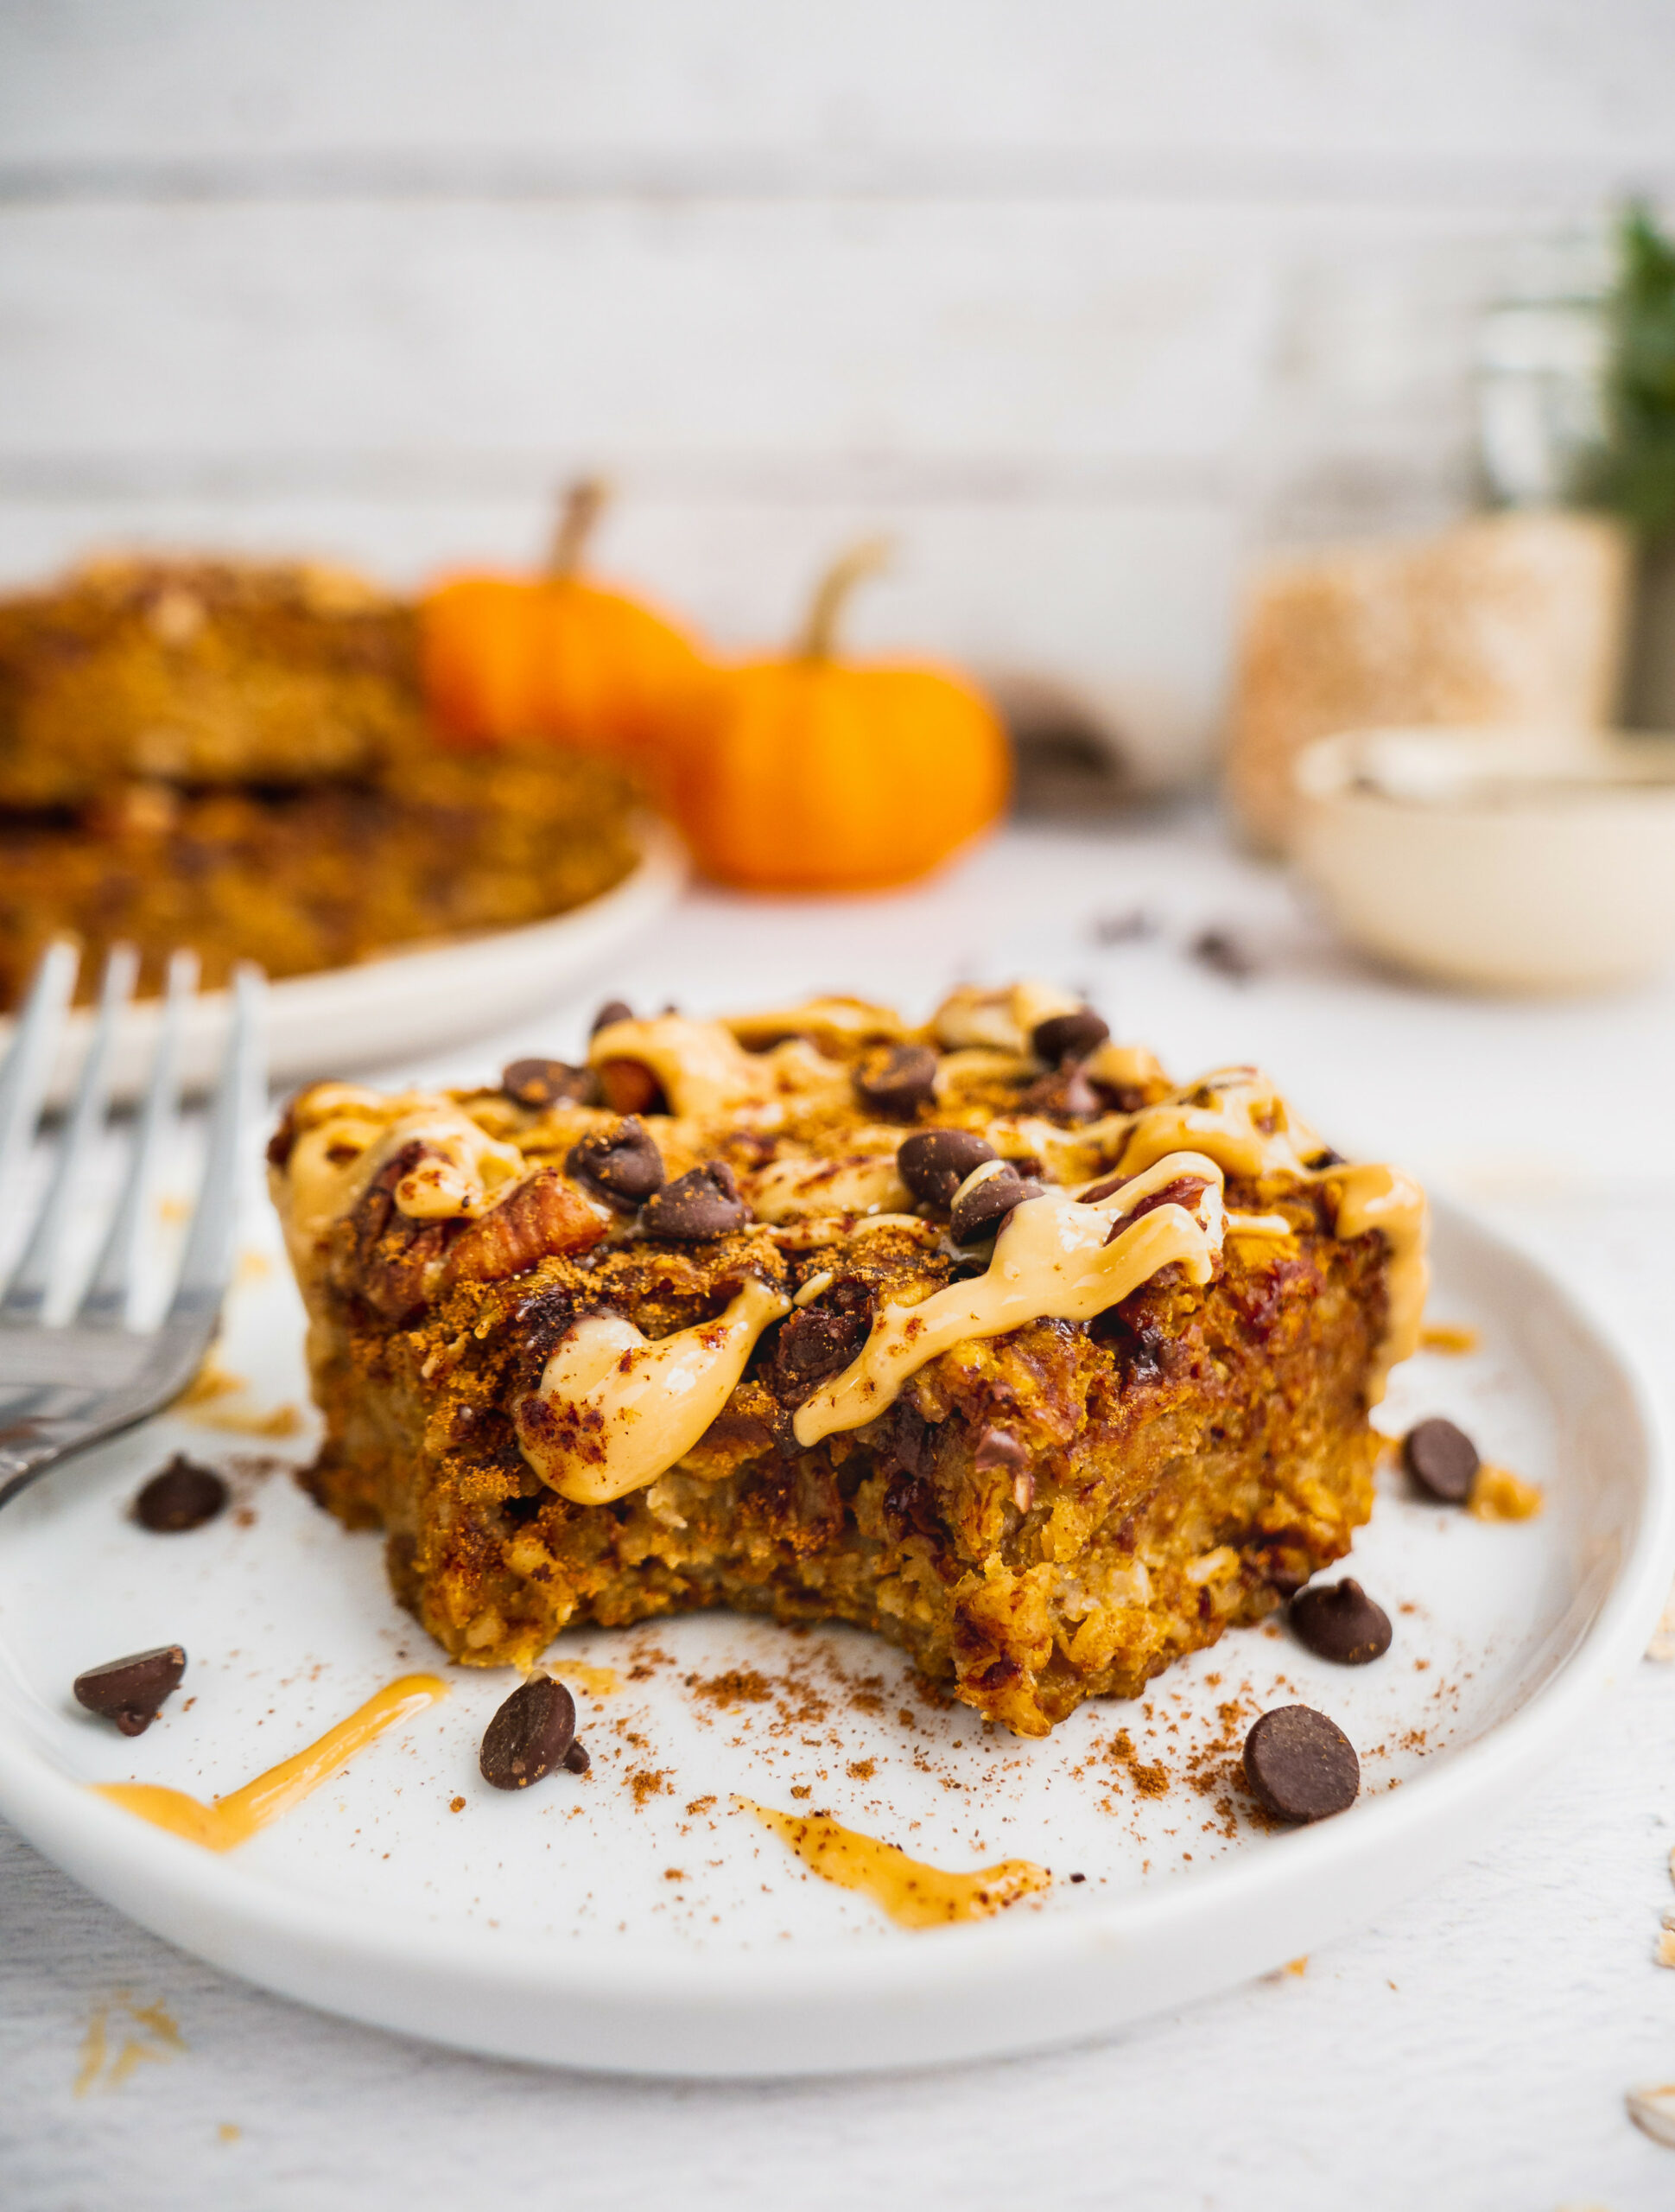 HEALTHY PUMPKIN OATMEAL BARS (GLUTEN FREE, VEGAN) - Recipes Breakfast Bars Healthy